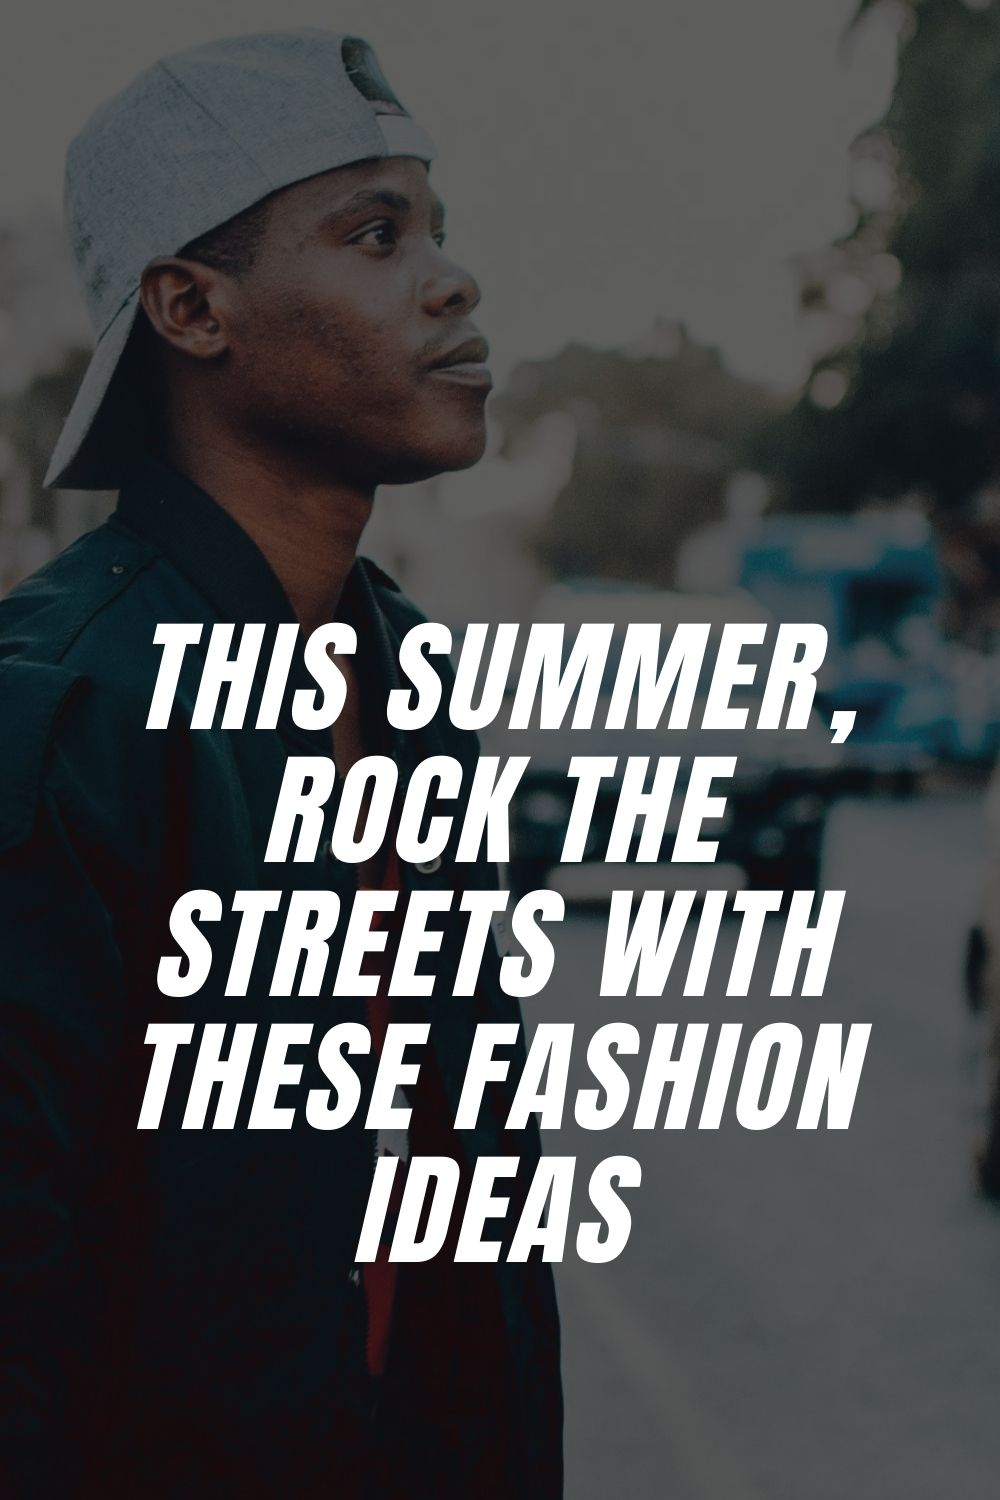 This Summer, Rock the Streets With These Fashion Ideas